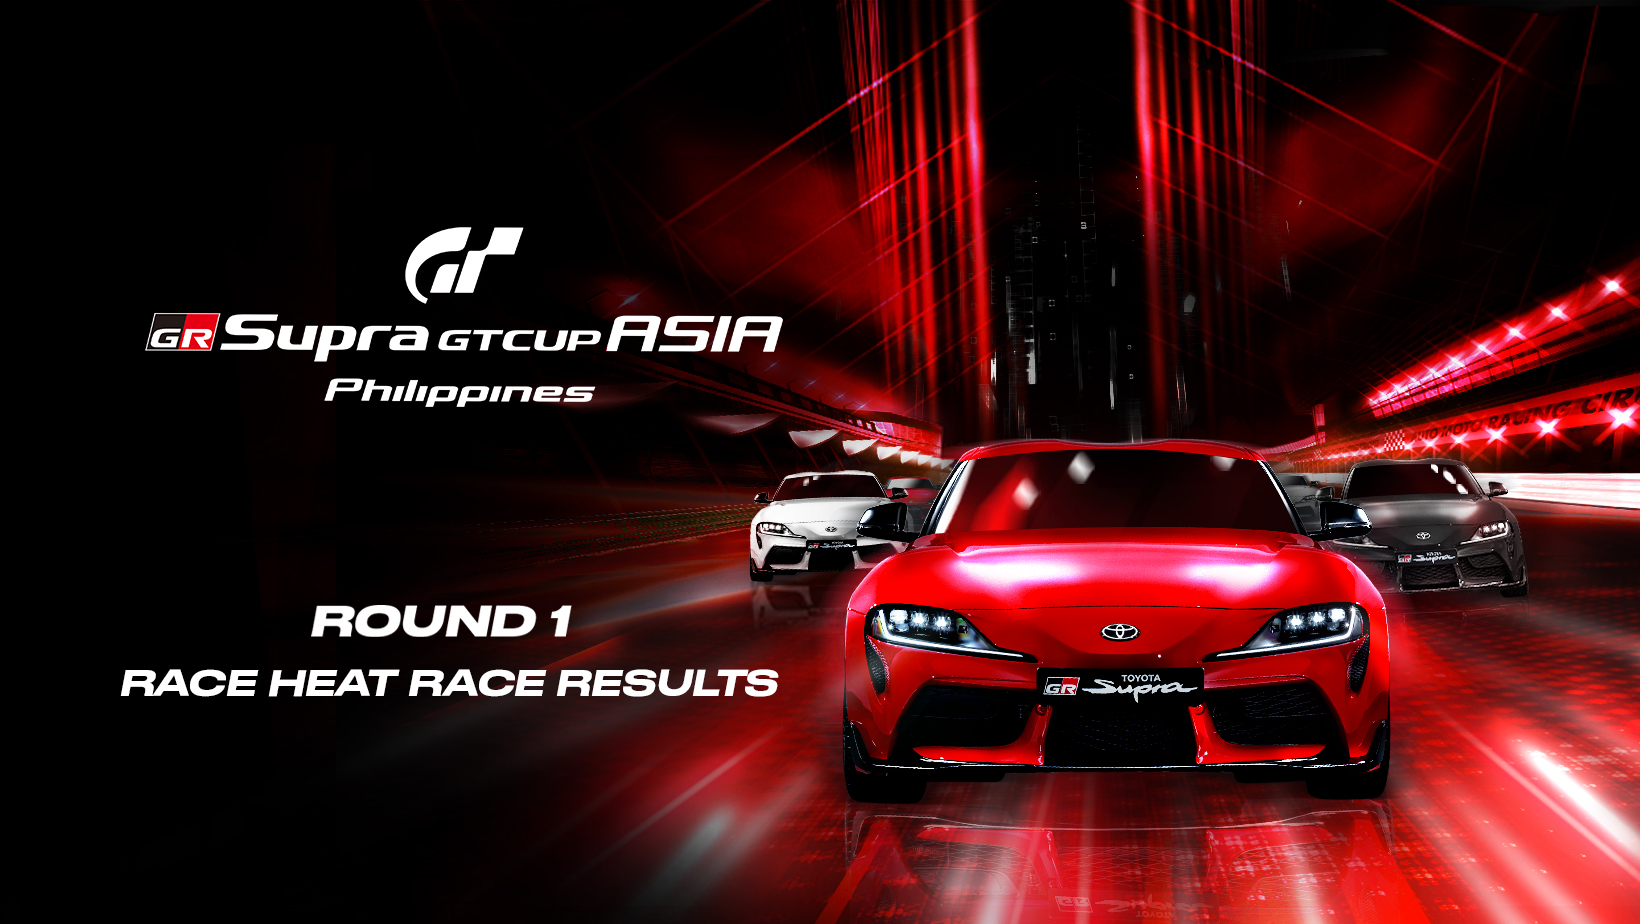 Toyota Wraps Up Round 1 of GR Supra GT Cup Asia – Philippines Thumbnail